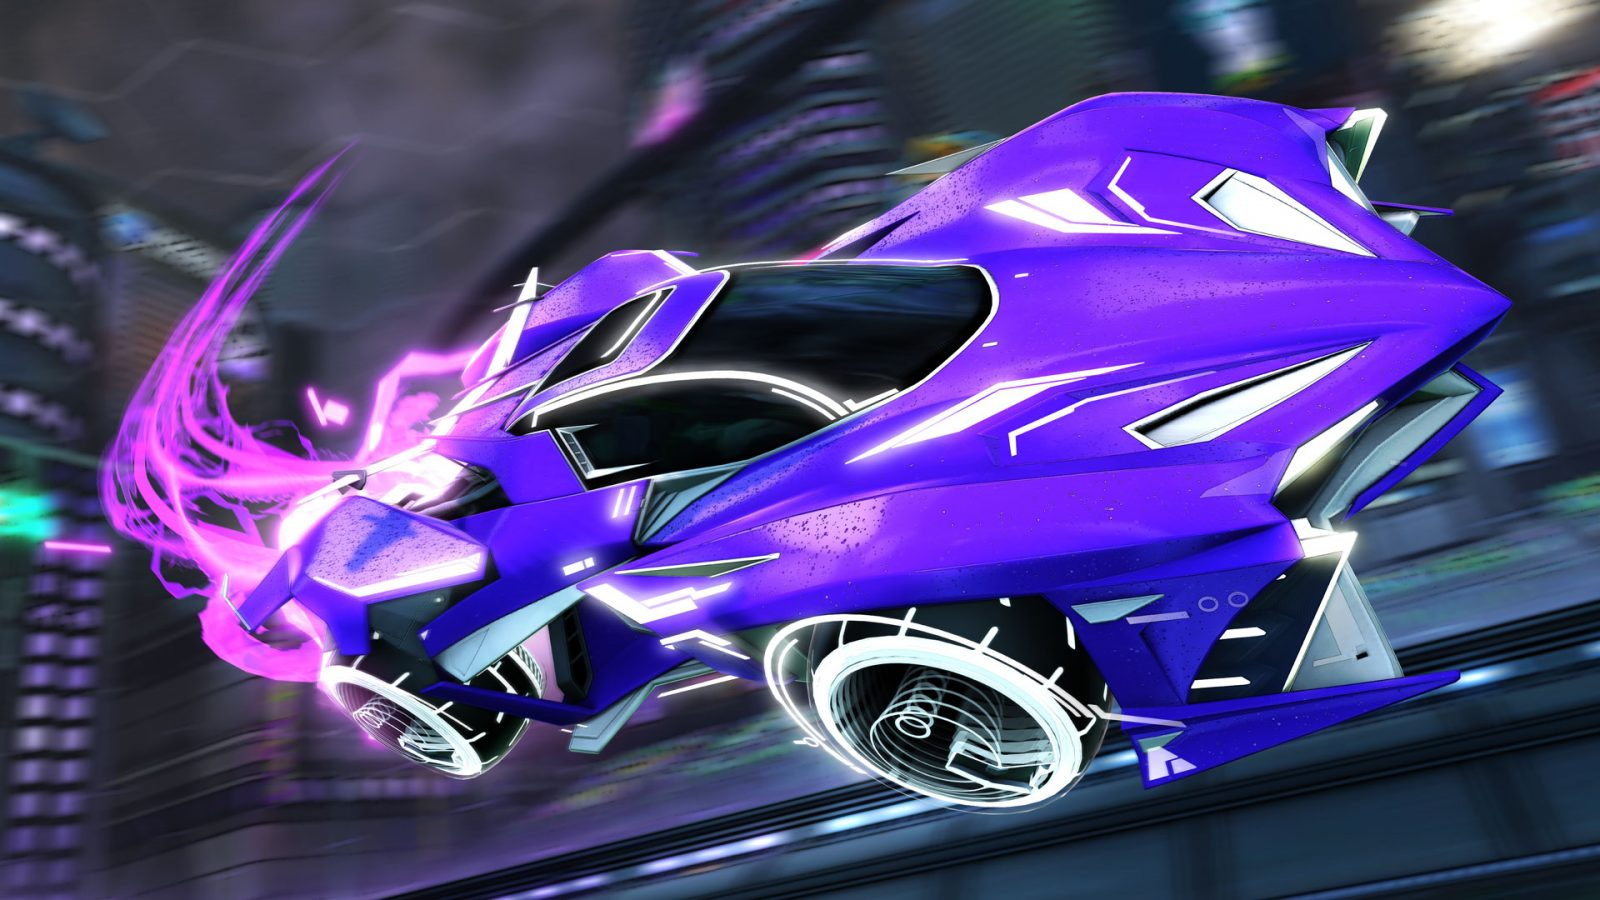 Rocket League's new Rocket Pass 5 revealed – release date, rewards, cars, and more confirmed